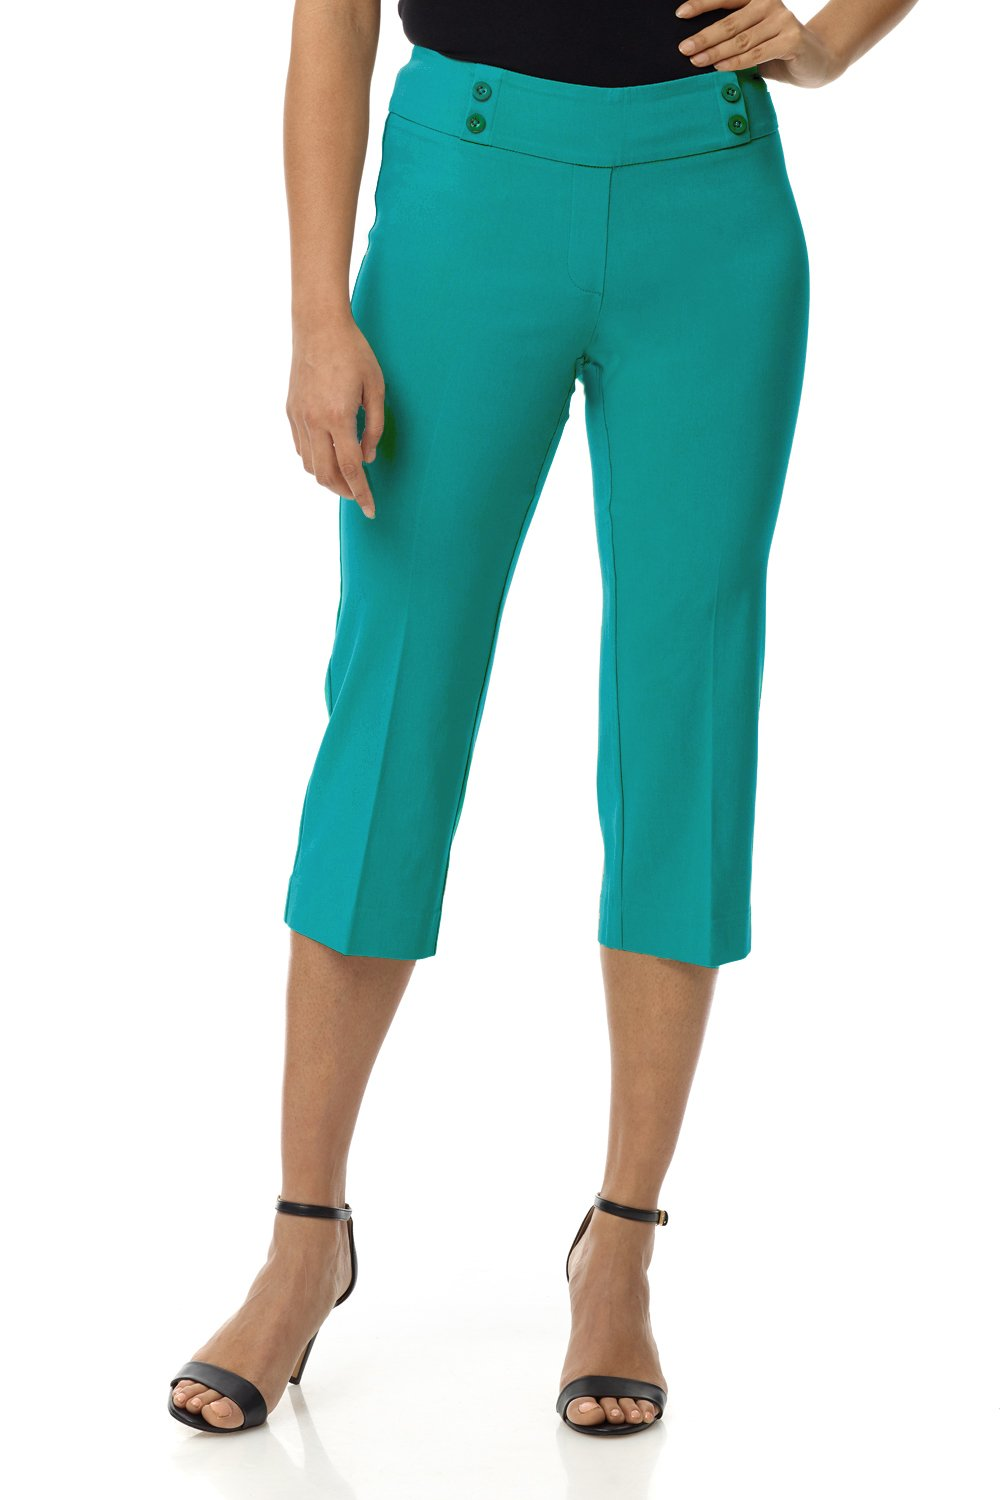 Rekucci Women's Ease in to Comfort Fit Capri with Button Detail (16,Jade)